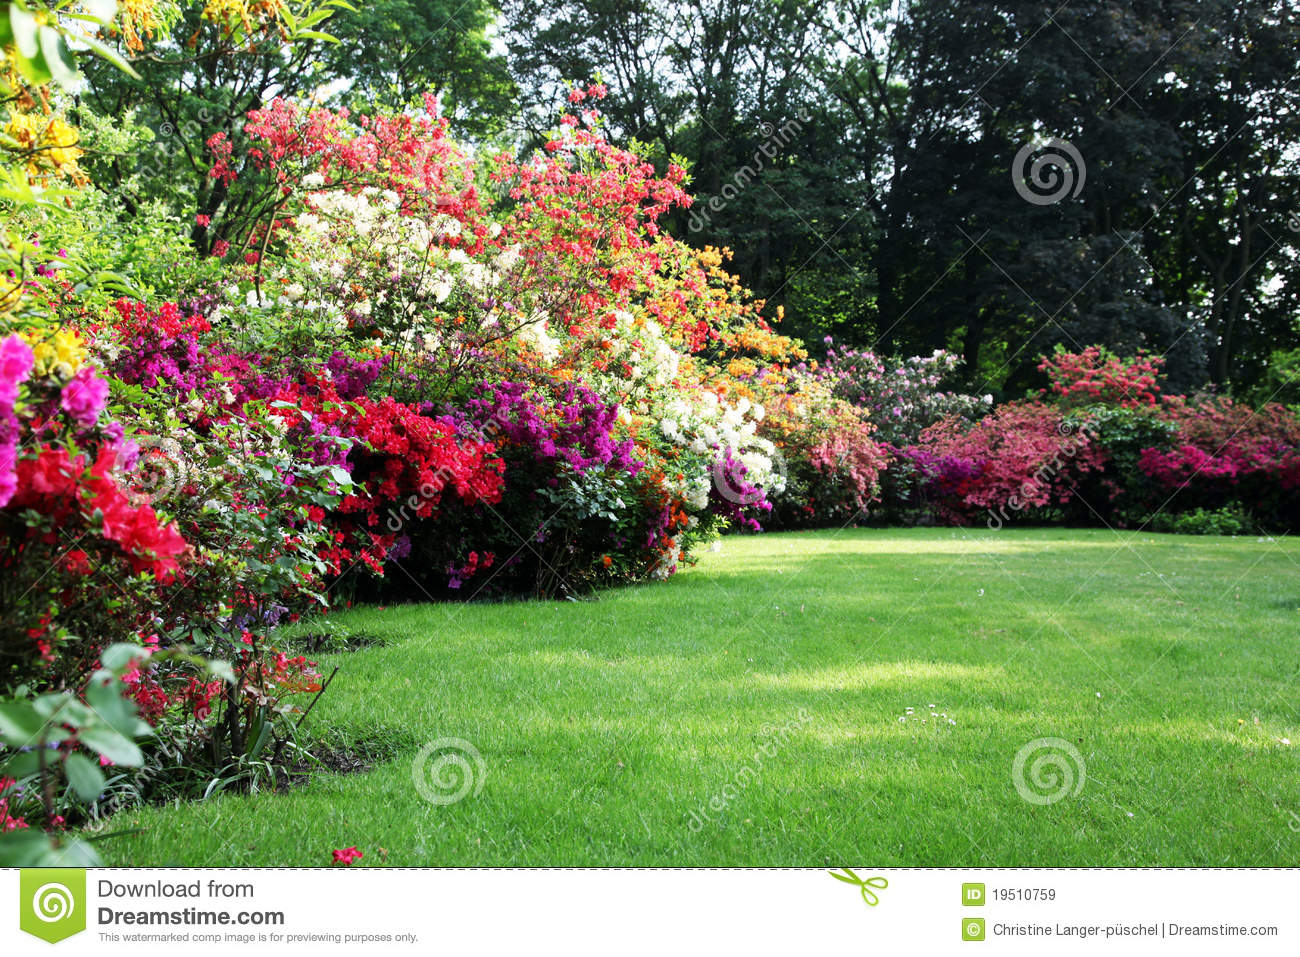 Beautiful Blooming Rhododendron In The Garden Royalty Free Stock Images - Image: 19510759